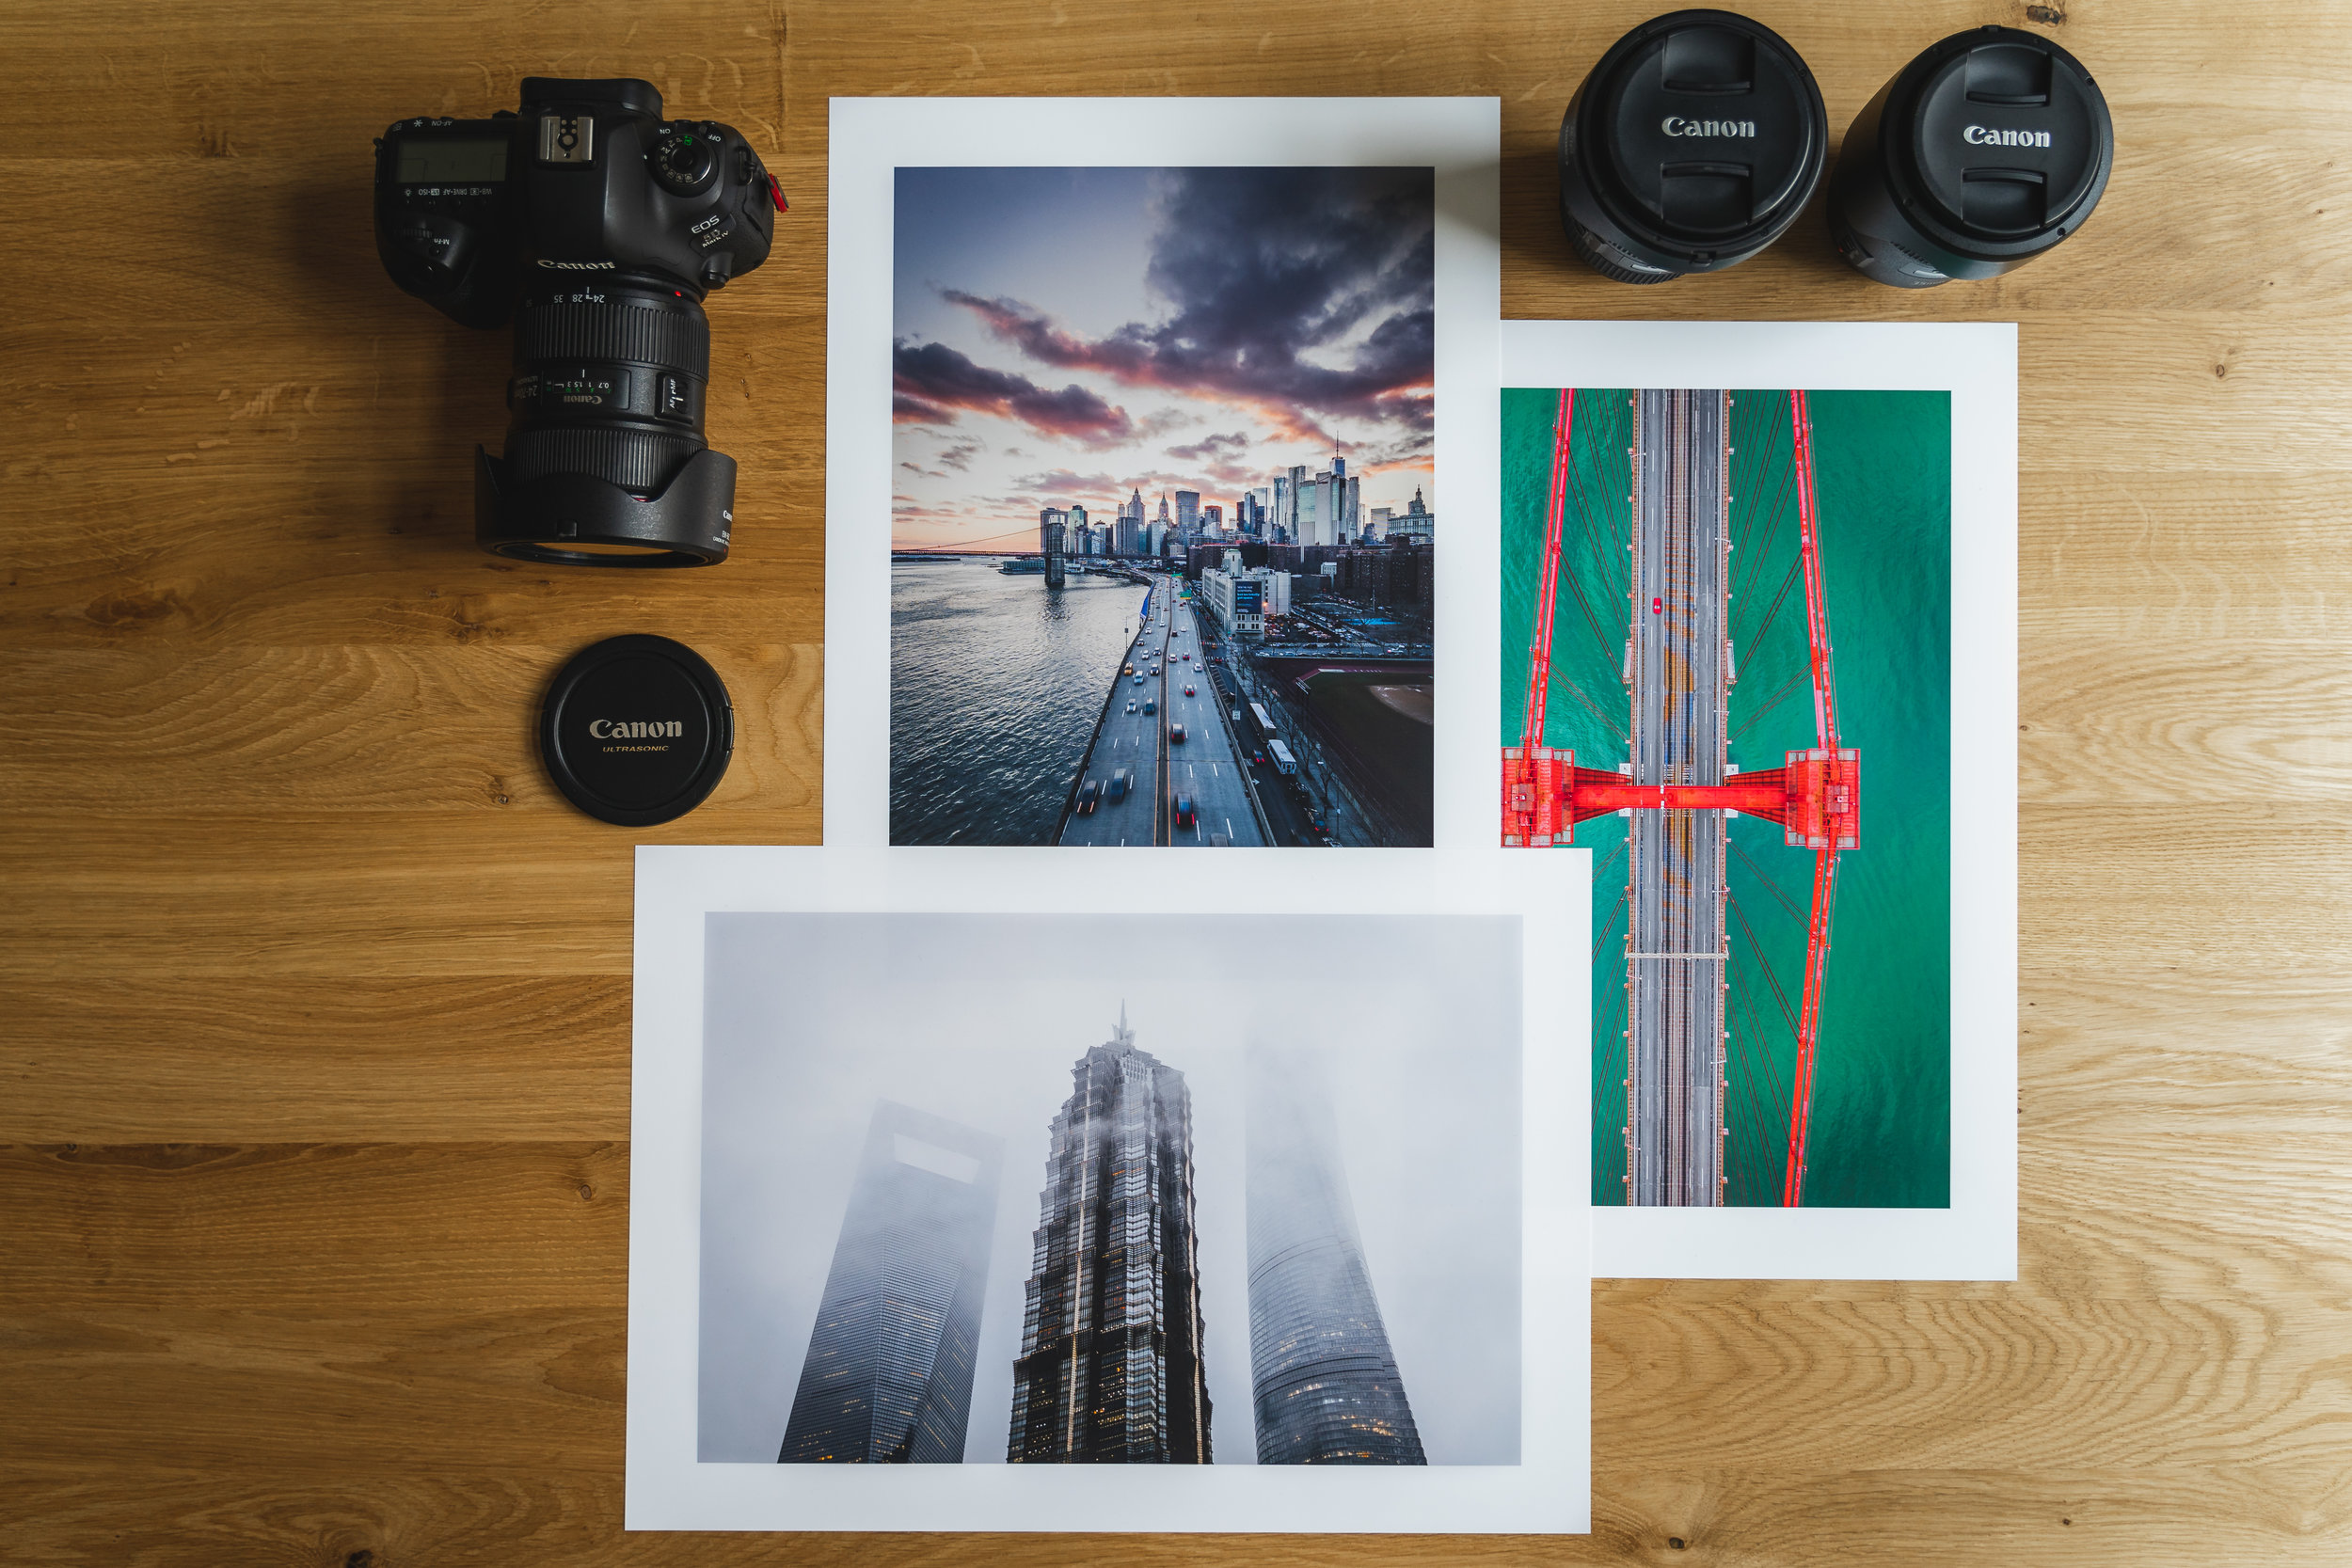 First test prints on the Canon imagePROGRAF PRO-1000